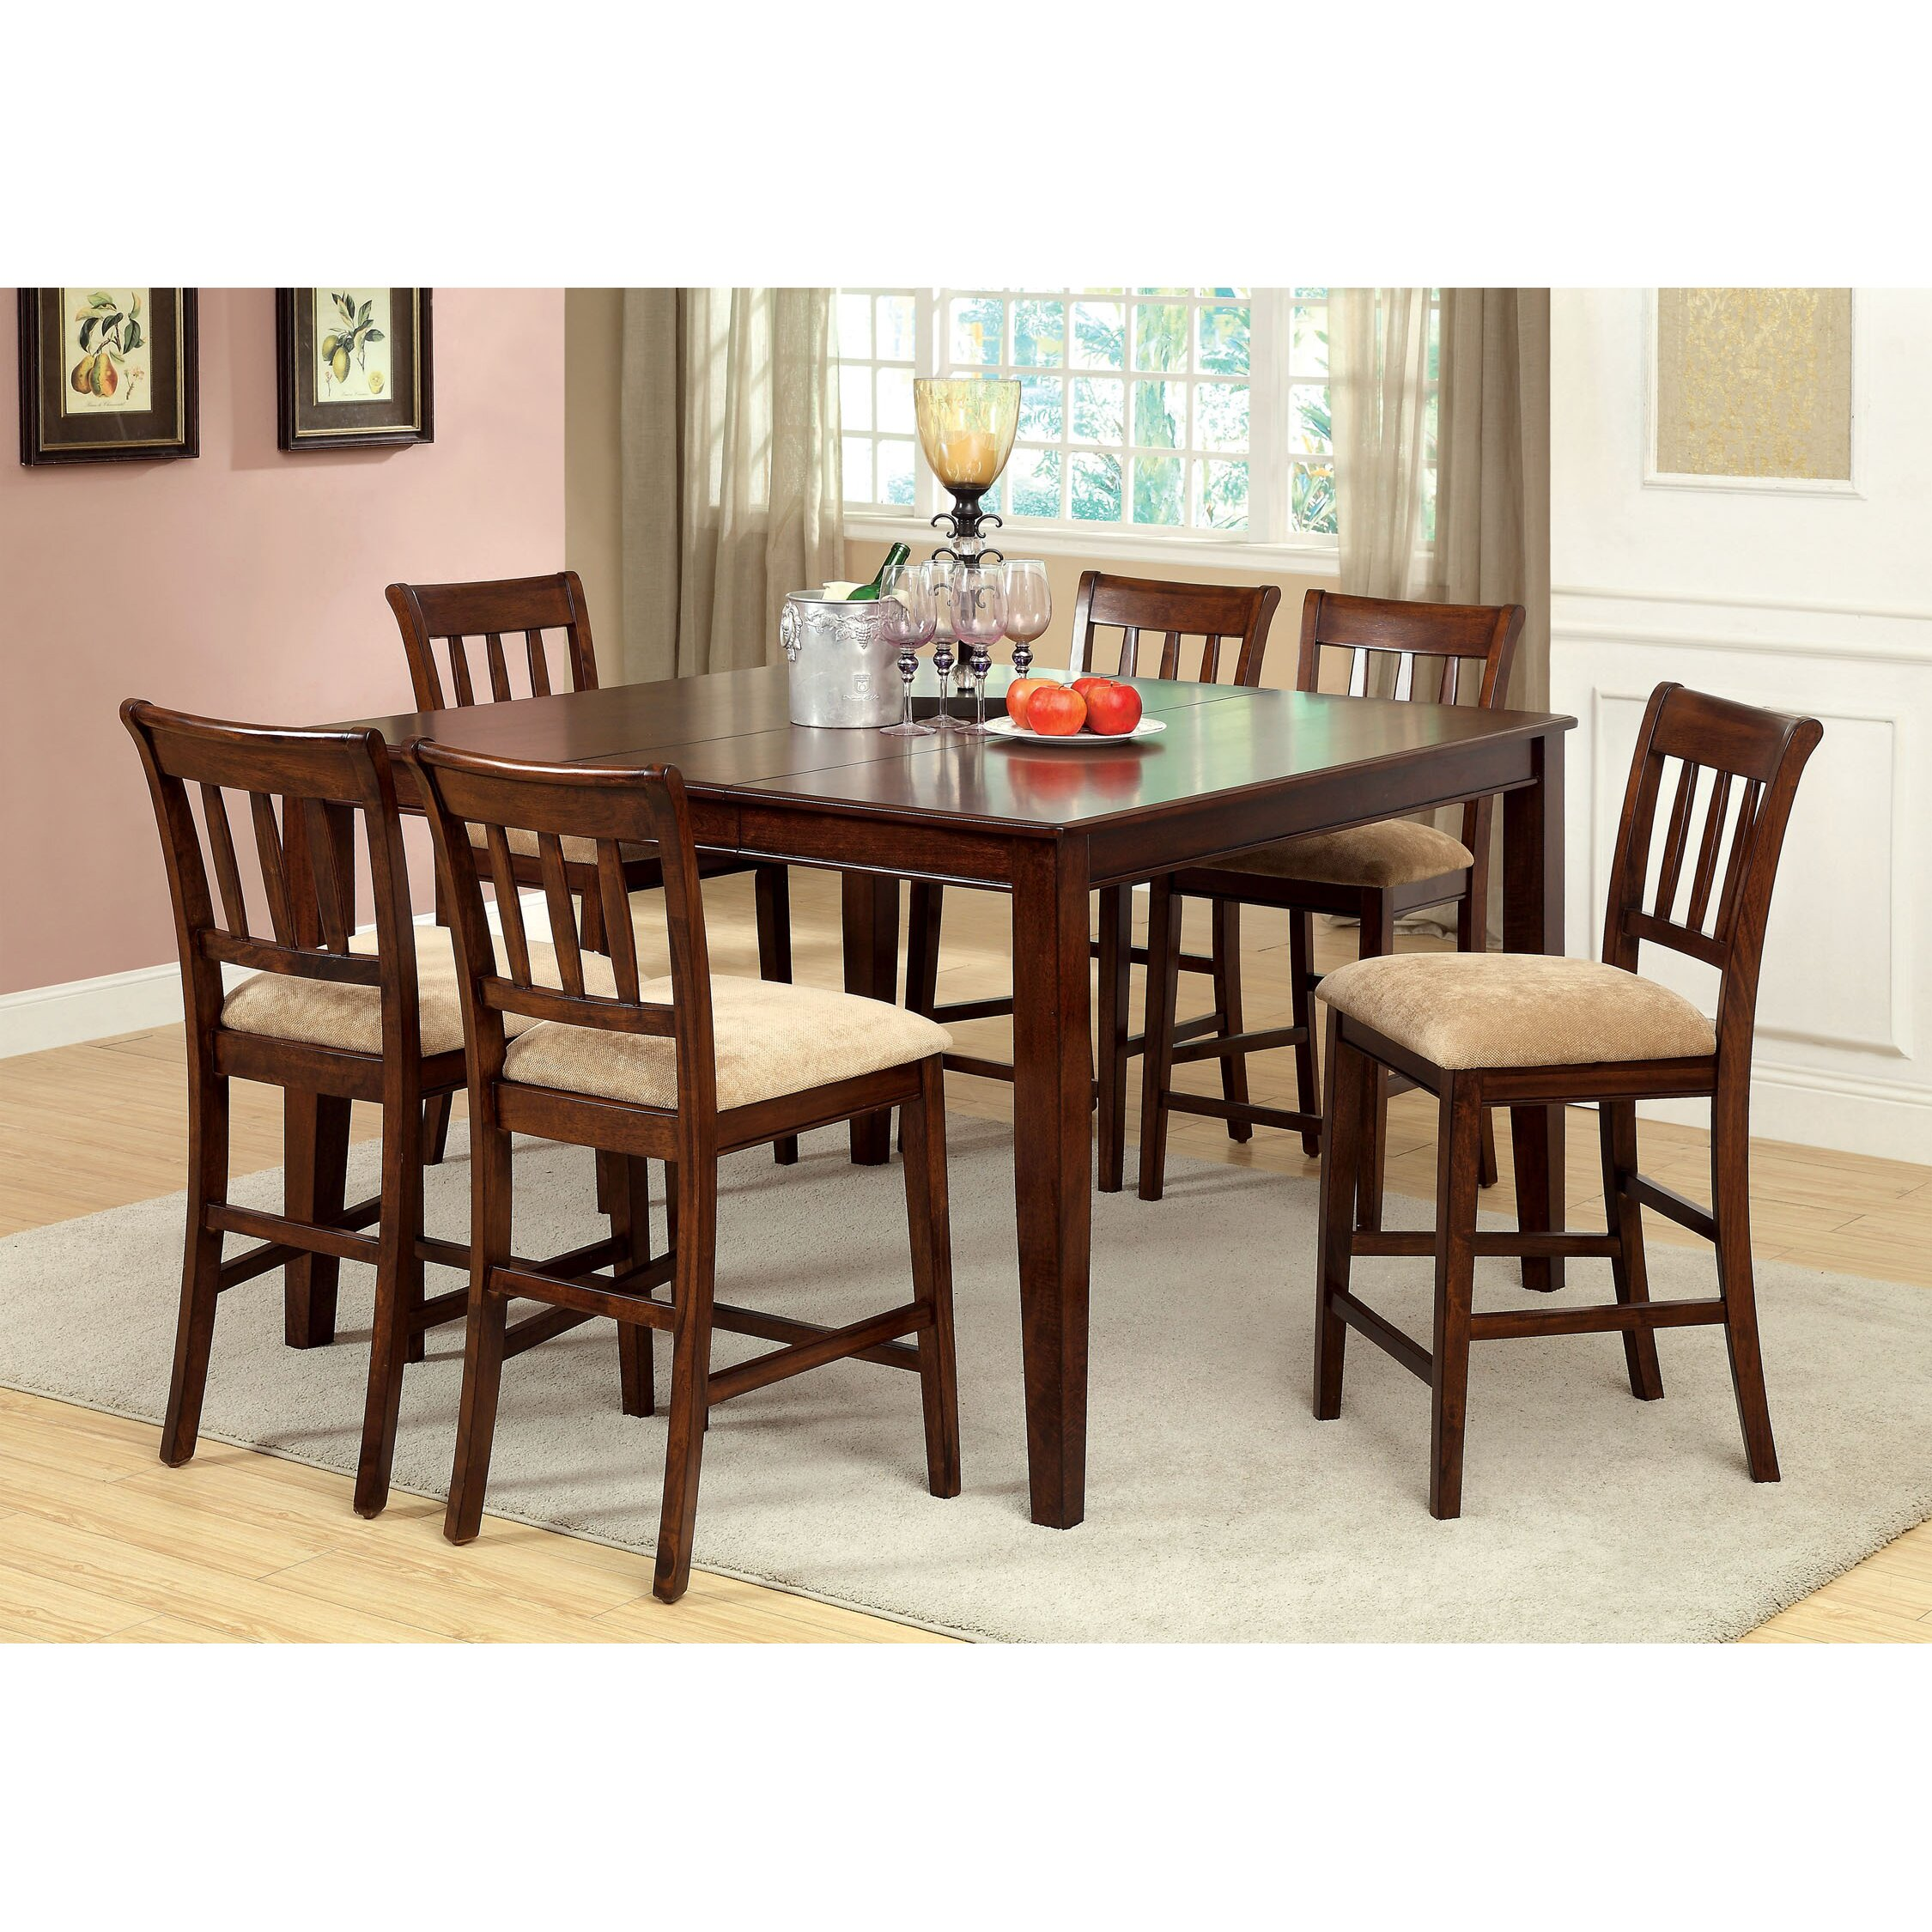 Begonia Twotone 7piece Counter Height Dining Set Set of 7 Free